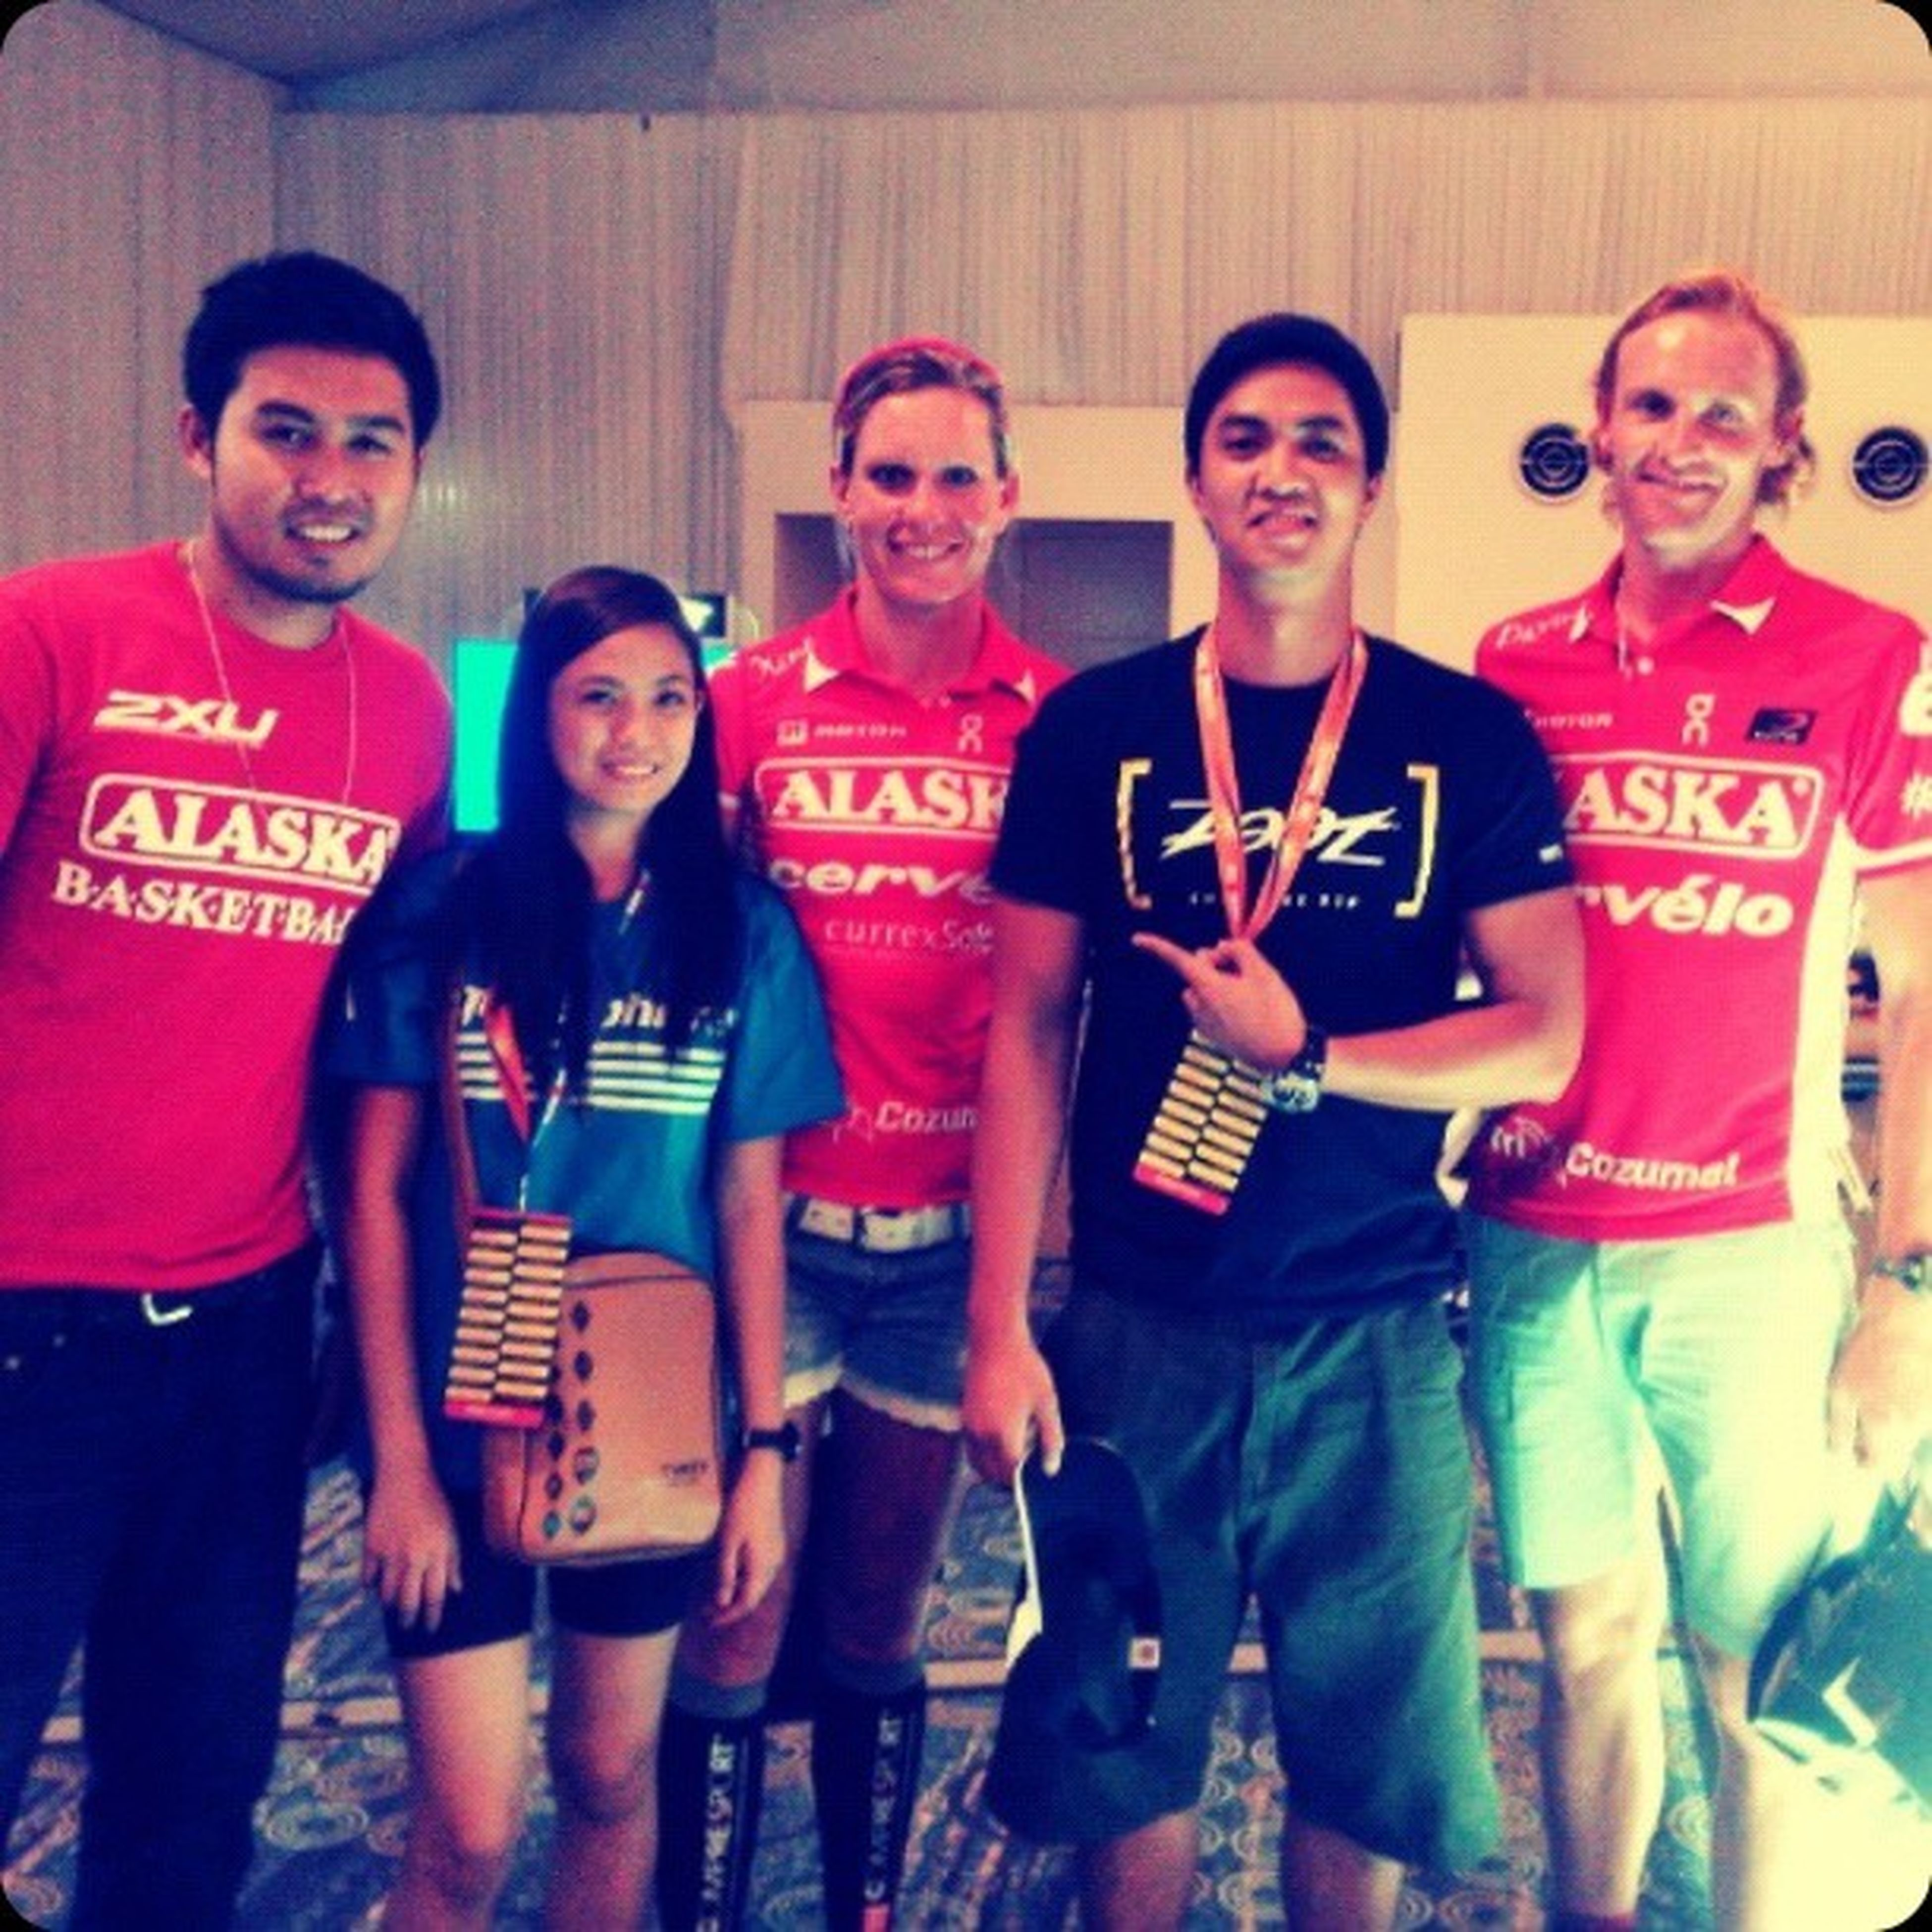 With the champs! Carolinesteffan Daviddellow TRIATHLON Cobraironman703 zoot aquasphere 2xu alaska teamtbb Another Cobra Ironman 70.3 Philippines done! See you next year champs. ♡ Congratulations to all the participants and finishers! Cheers! I ♥Triathlon :)